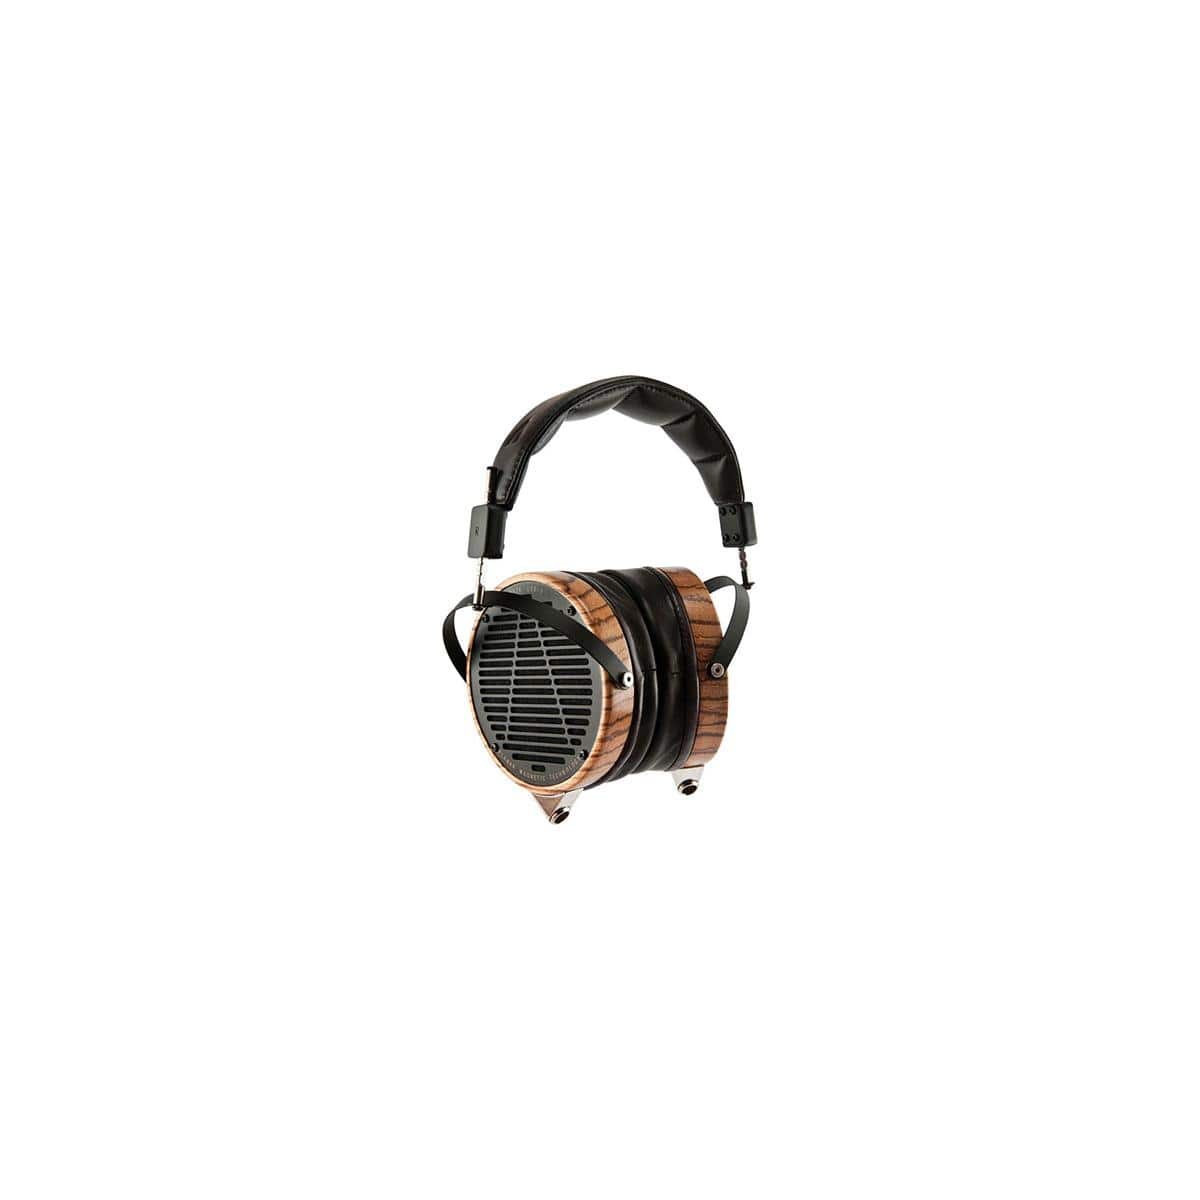 AUDEZE LCD-3 Planar Magnetic Headphones $1499 + free shipping